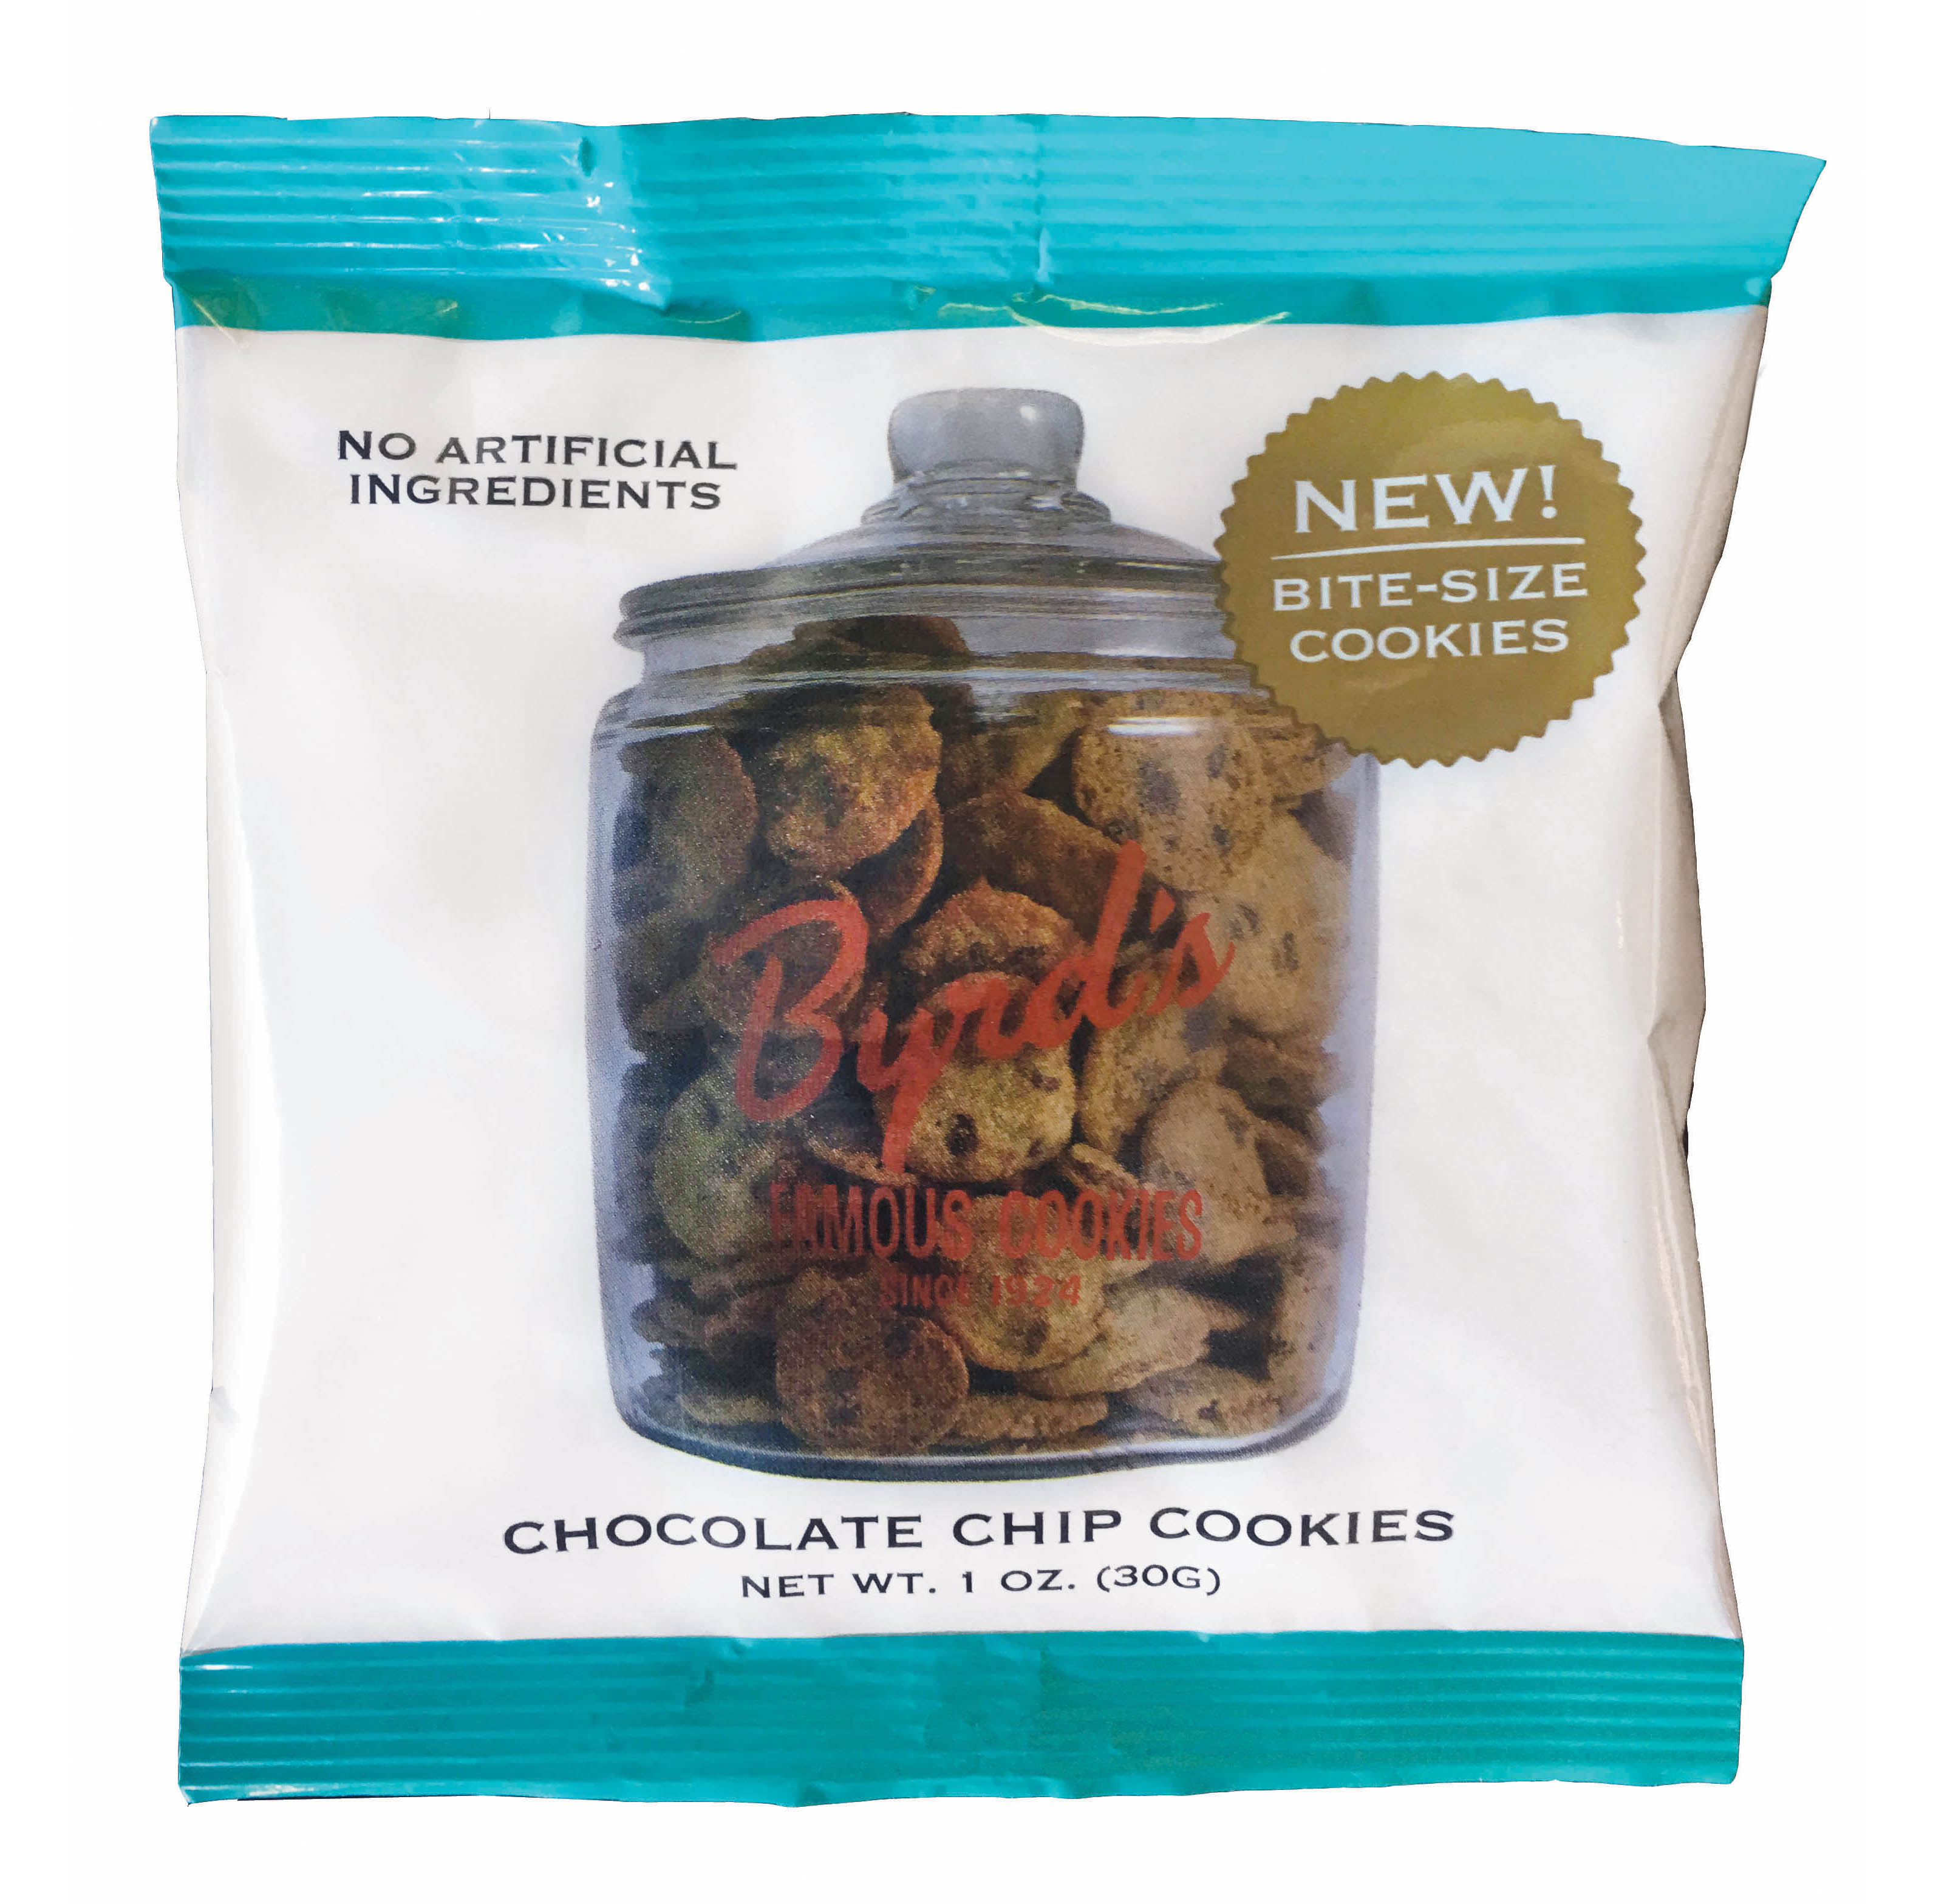 Chocolate Chip Cookie 1 oz Snack Pack (100 ct.)